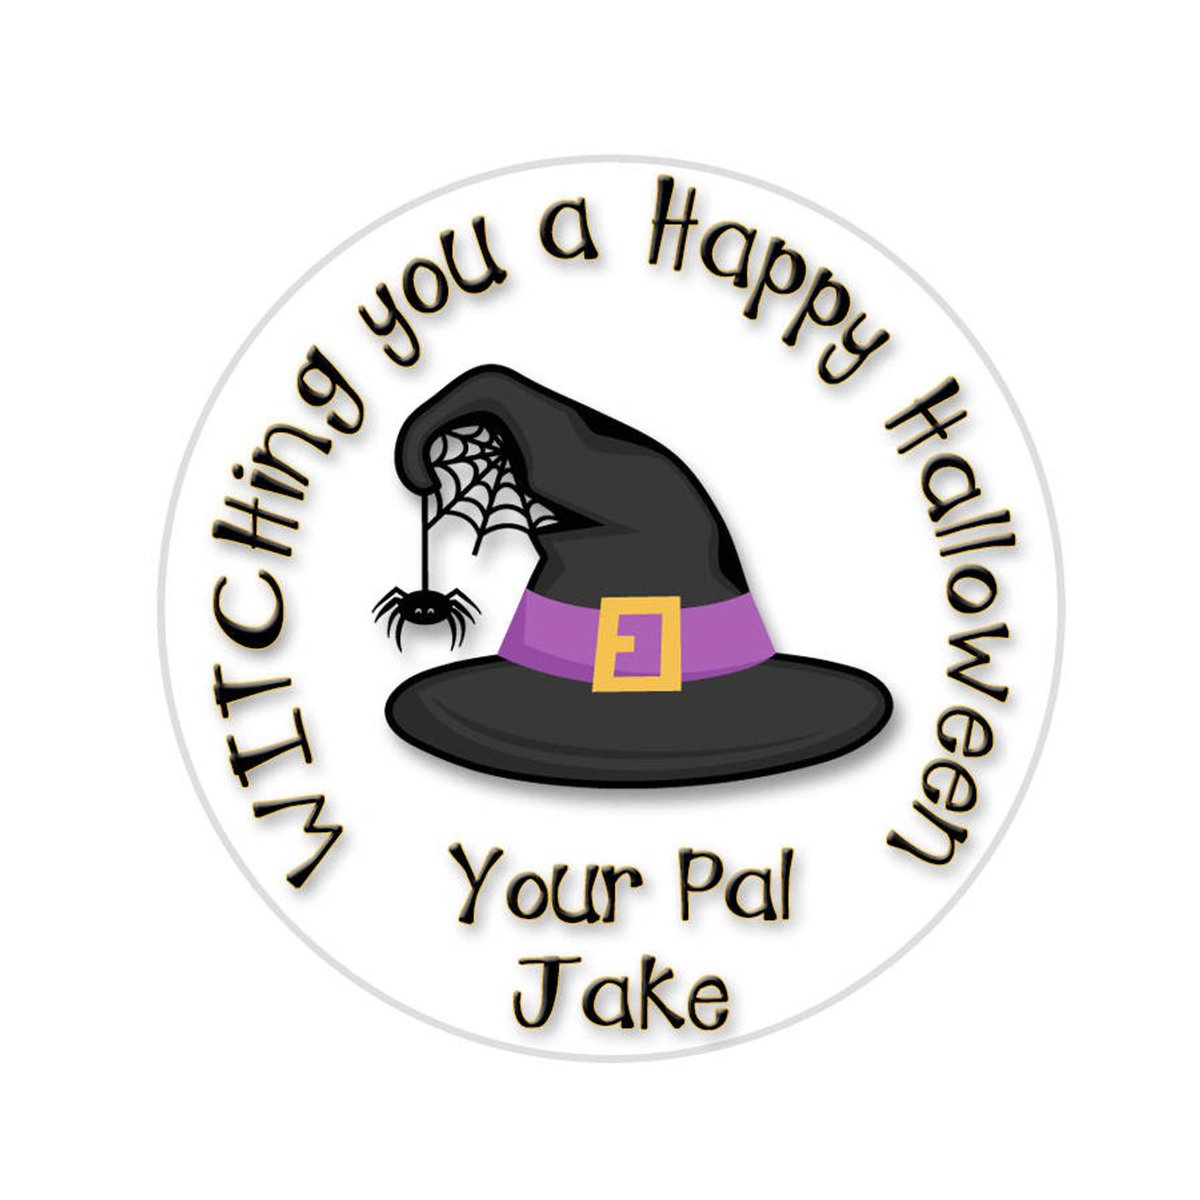 Halloween Stickers Witch Stickers Trick or Treat Sticker   Etsy   #witchstickers #Halloween stickers